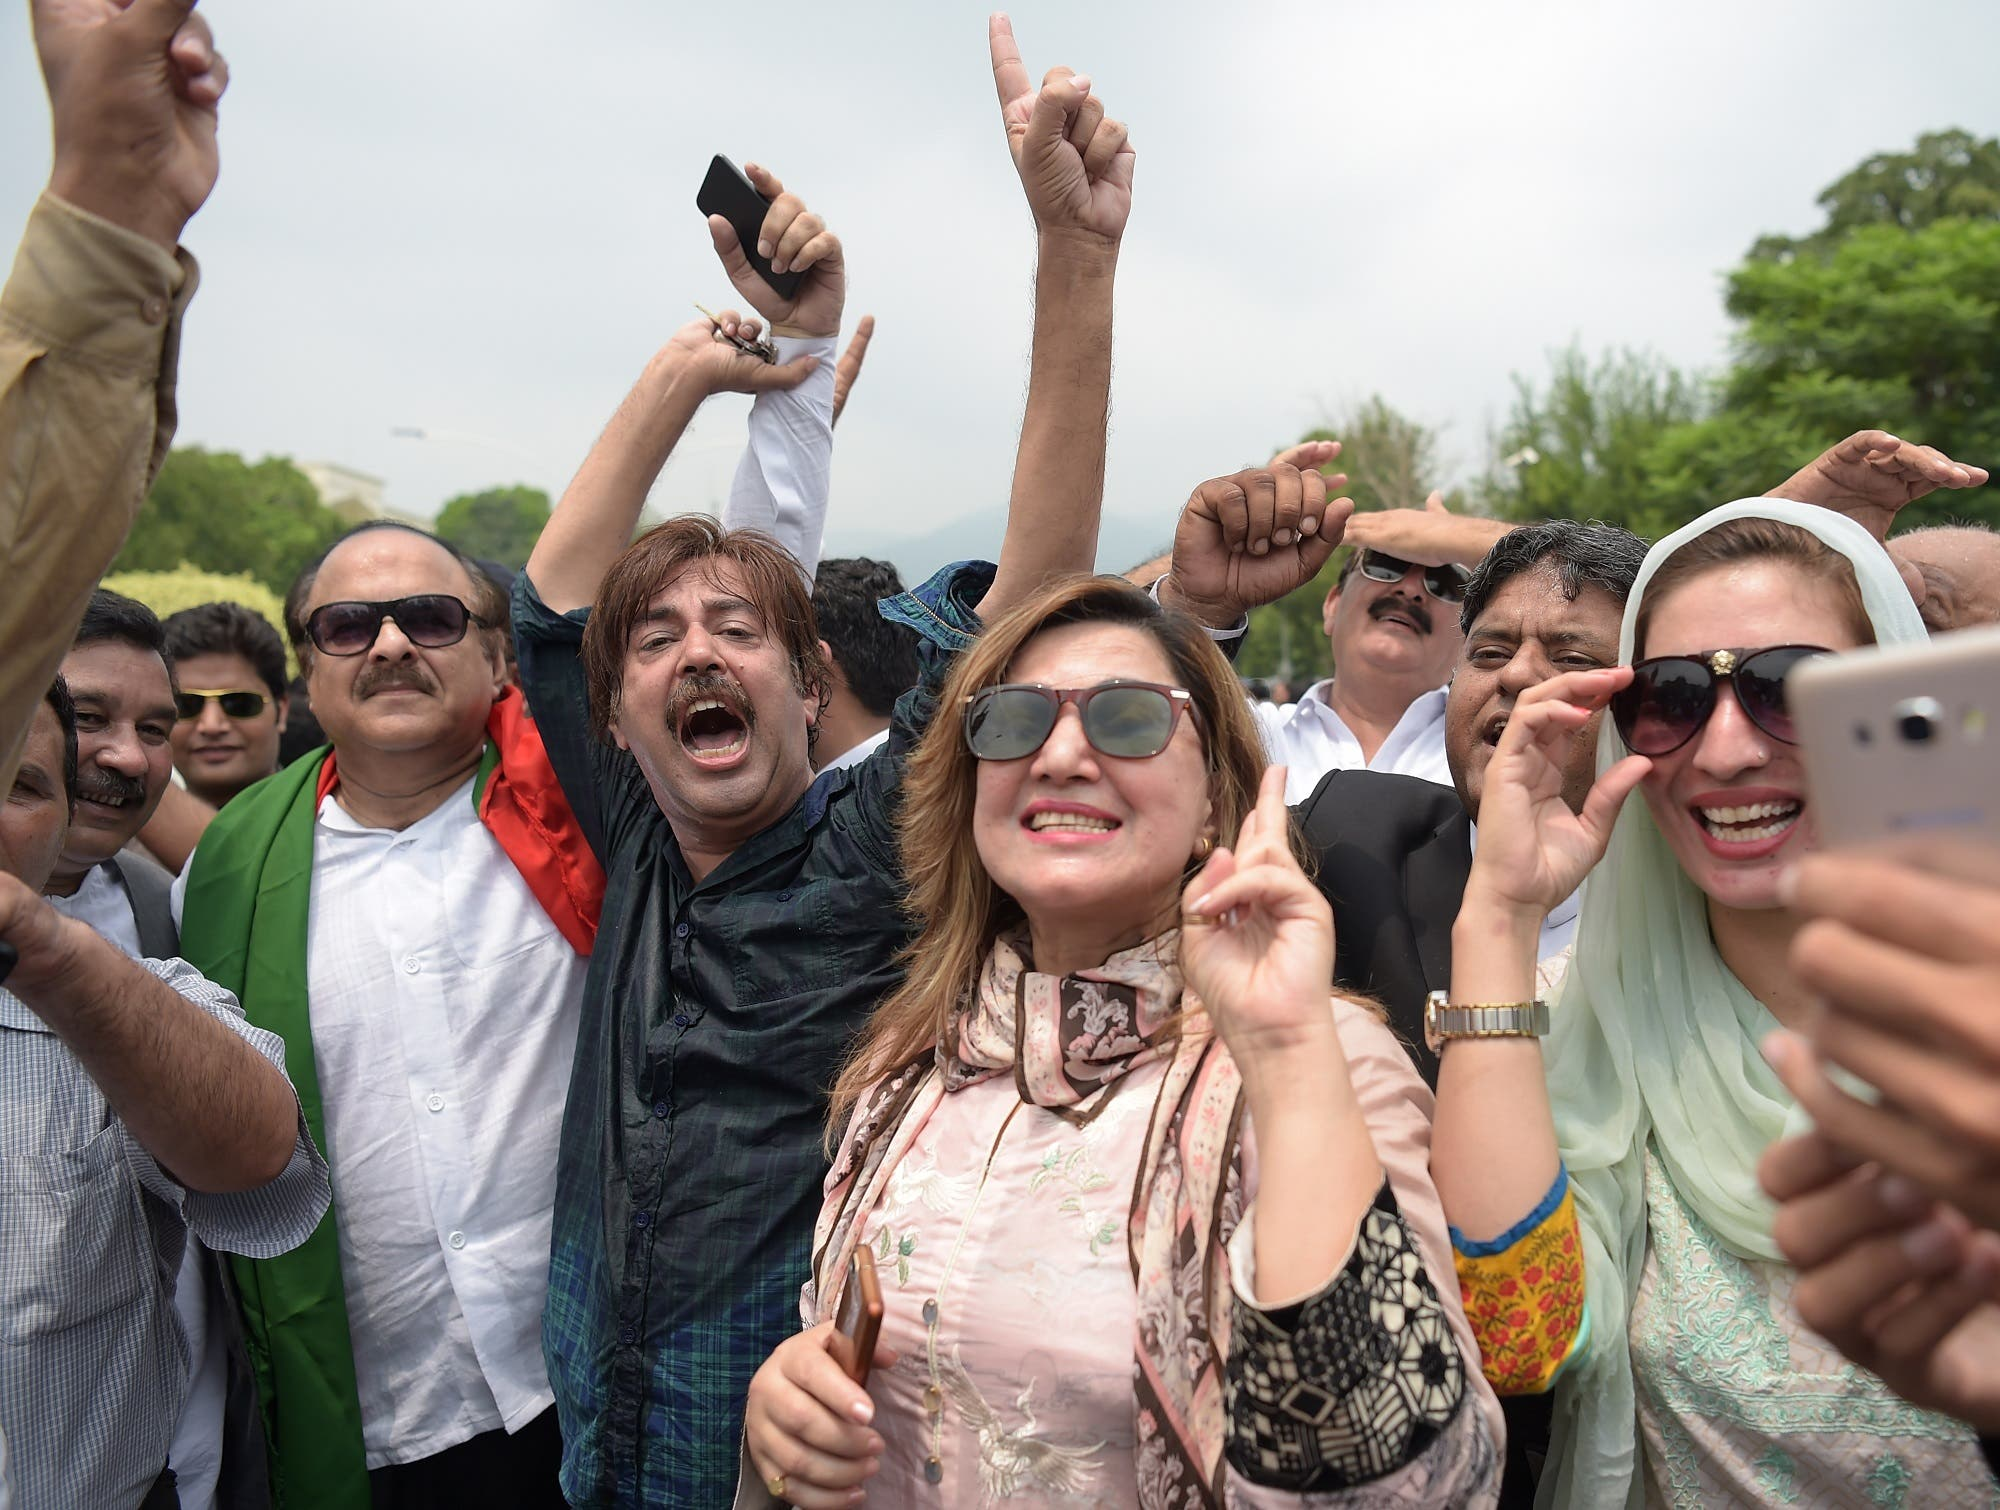 Opposition supporters of Imran Khan's Pakistan Tehreek-i-Insaf (PTI) party celebrate after the verdict in Islamabad on July 28, 2017. (AFP)